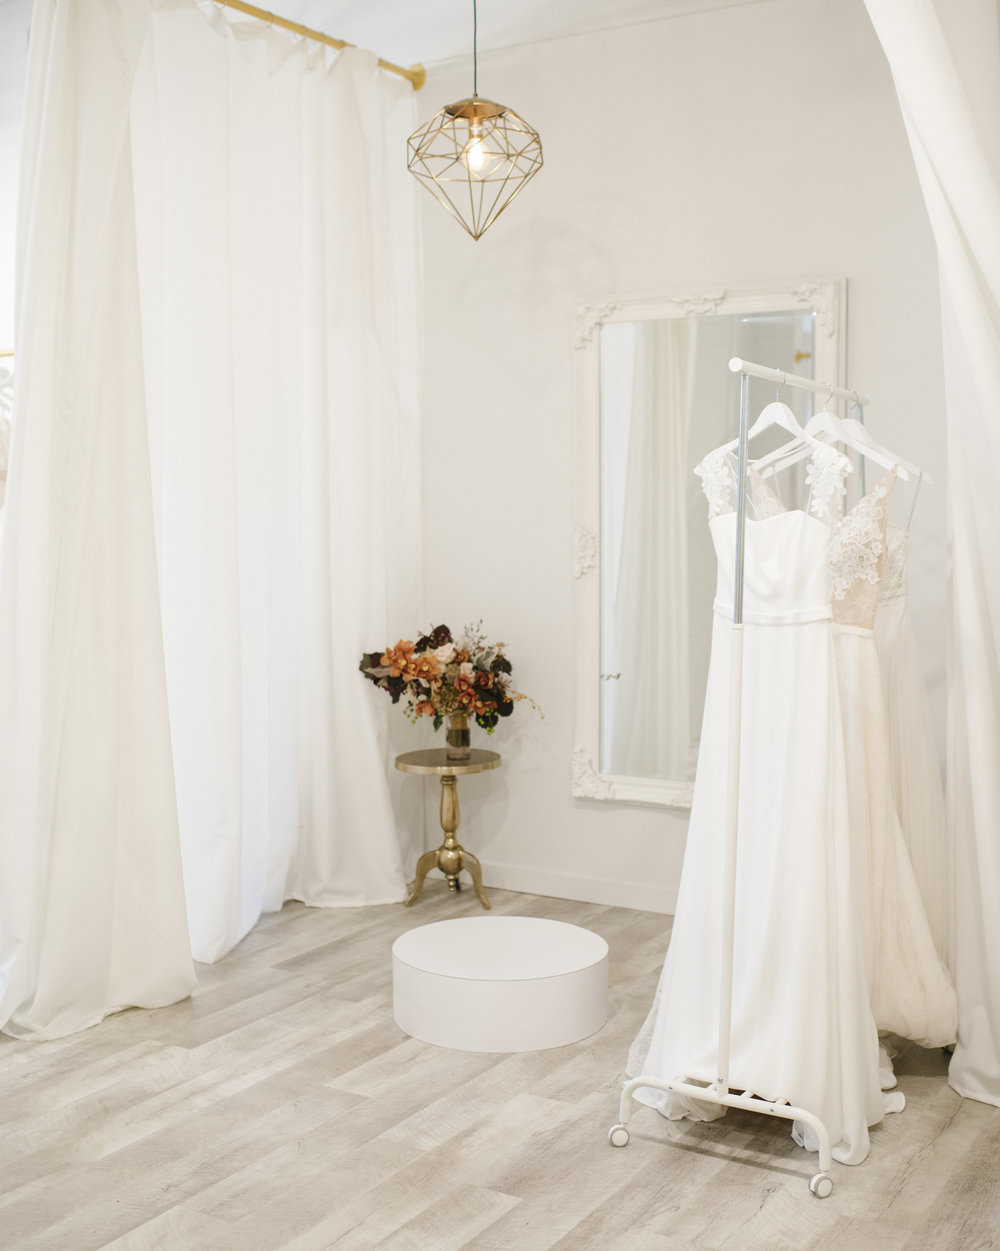 The Bridal Boutique in Edmonton, Alberta